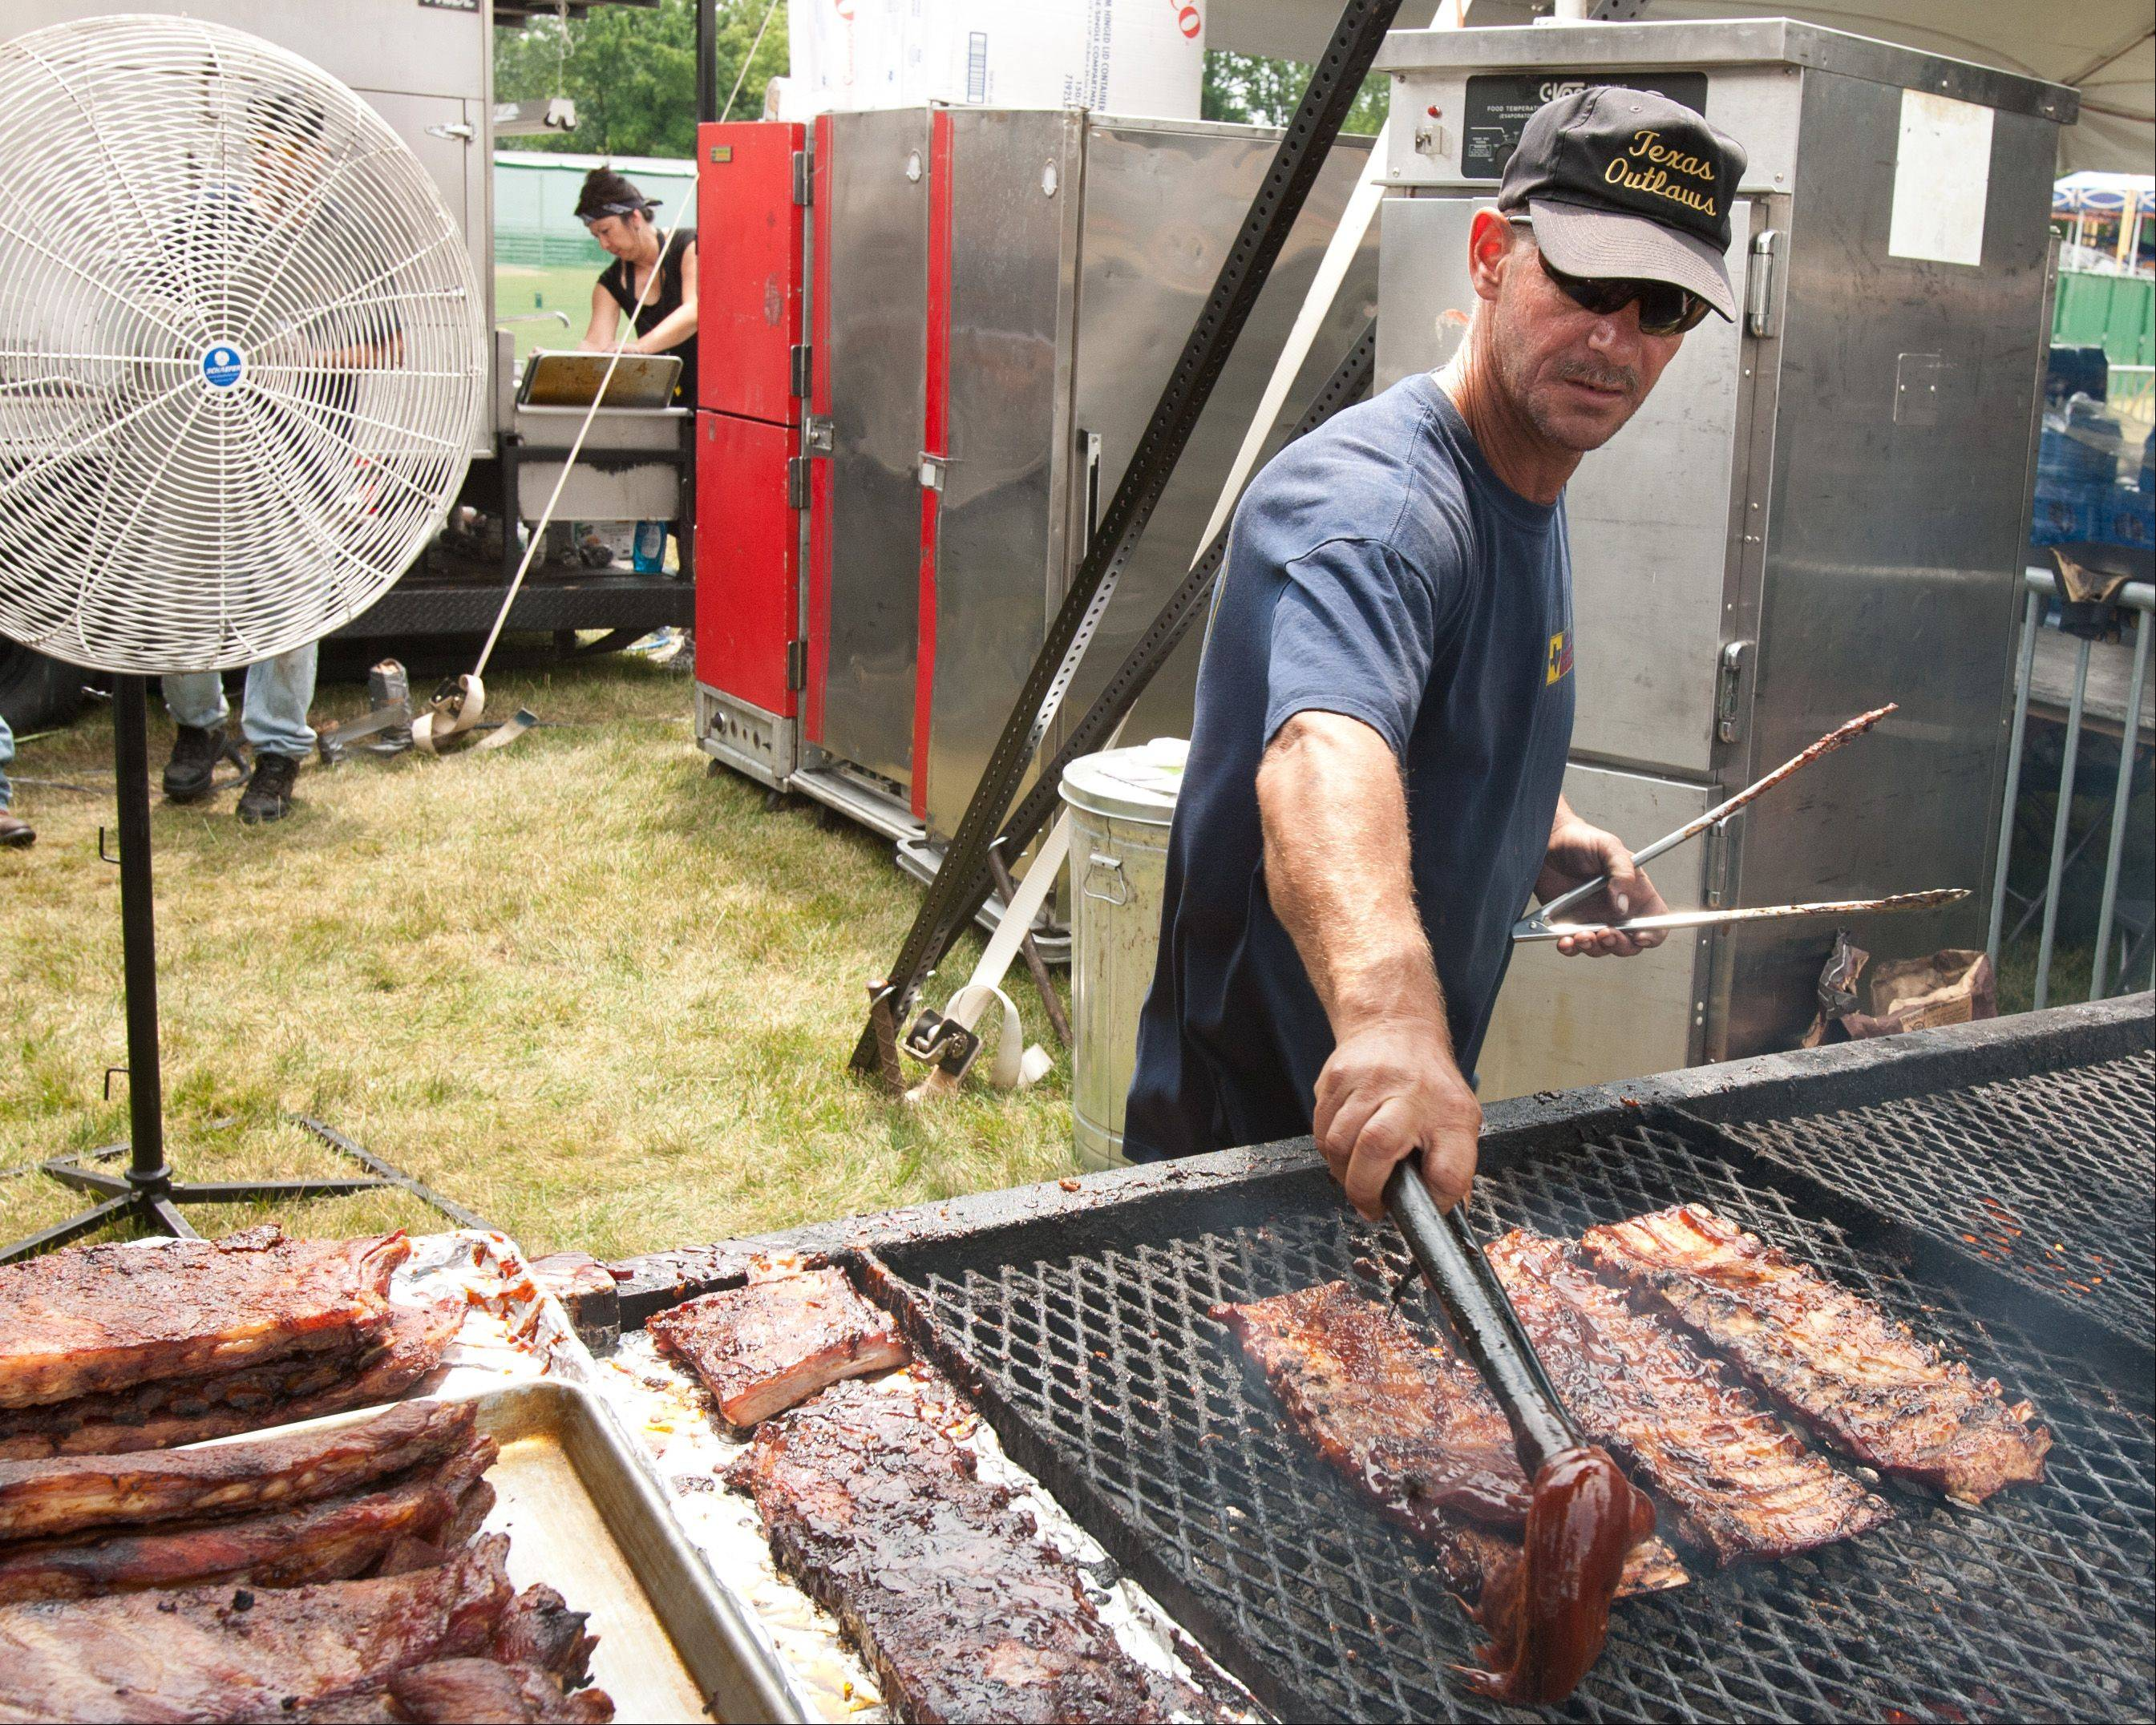 Ron Godsey of Elizabethtown, Kentucky puts the finishing touches on a rack of ribs Saturday at Texas Outlaw's booth at Ribfest in Naperville.